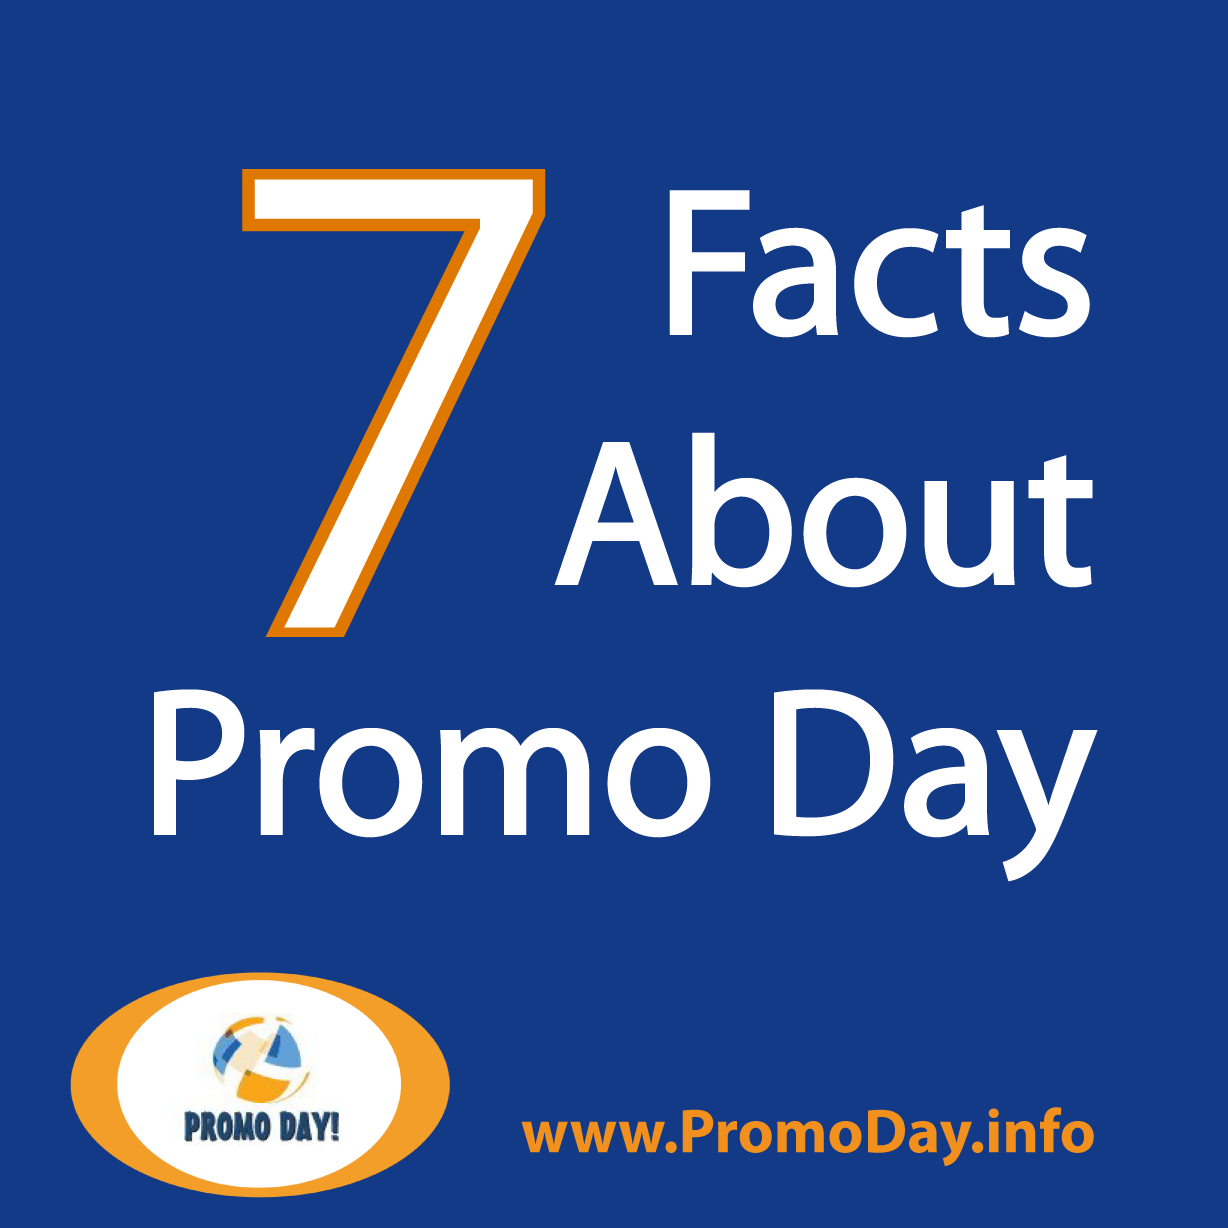 7 Facts About Promo Day, www.PromoDay.info #PD15 #WritersConference #Event